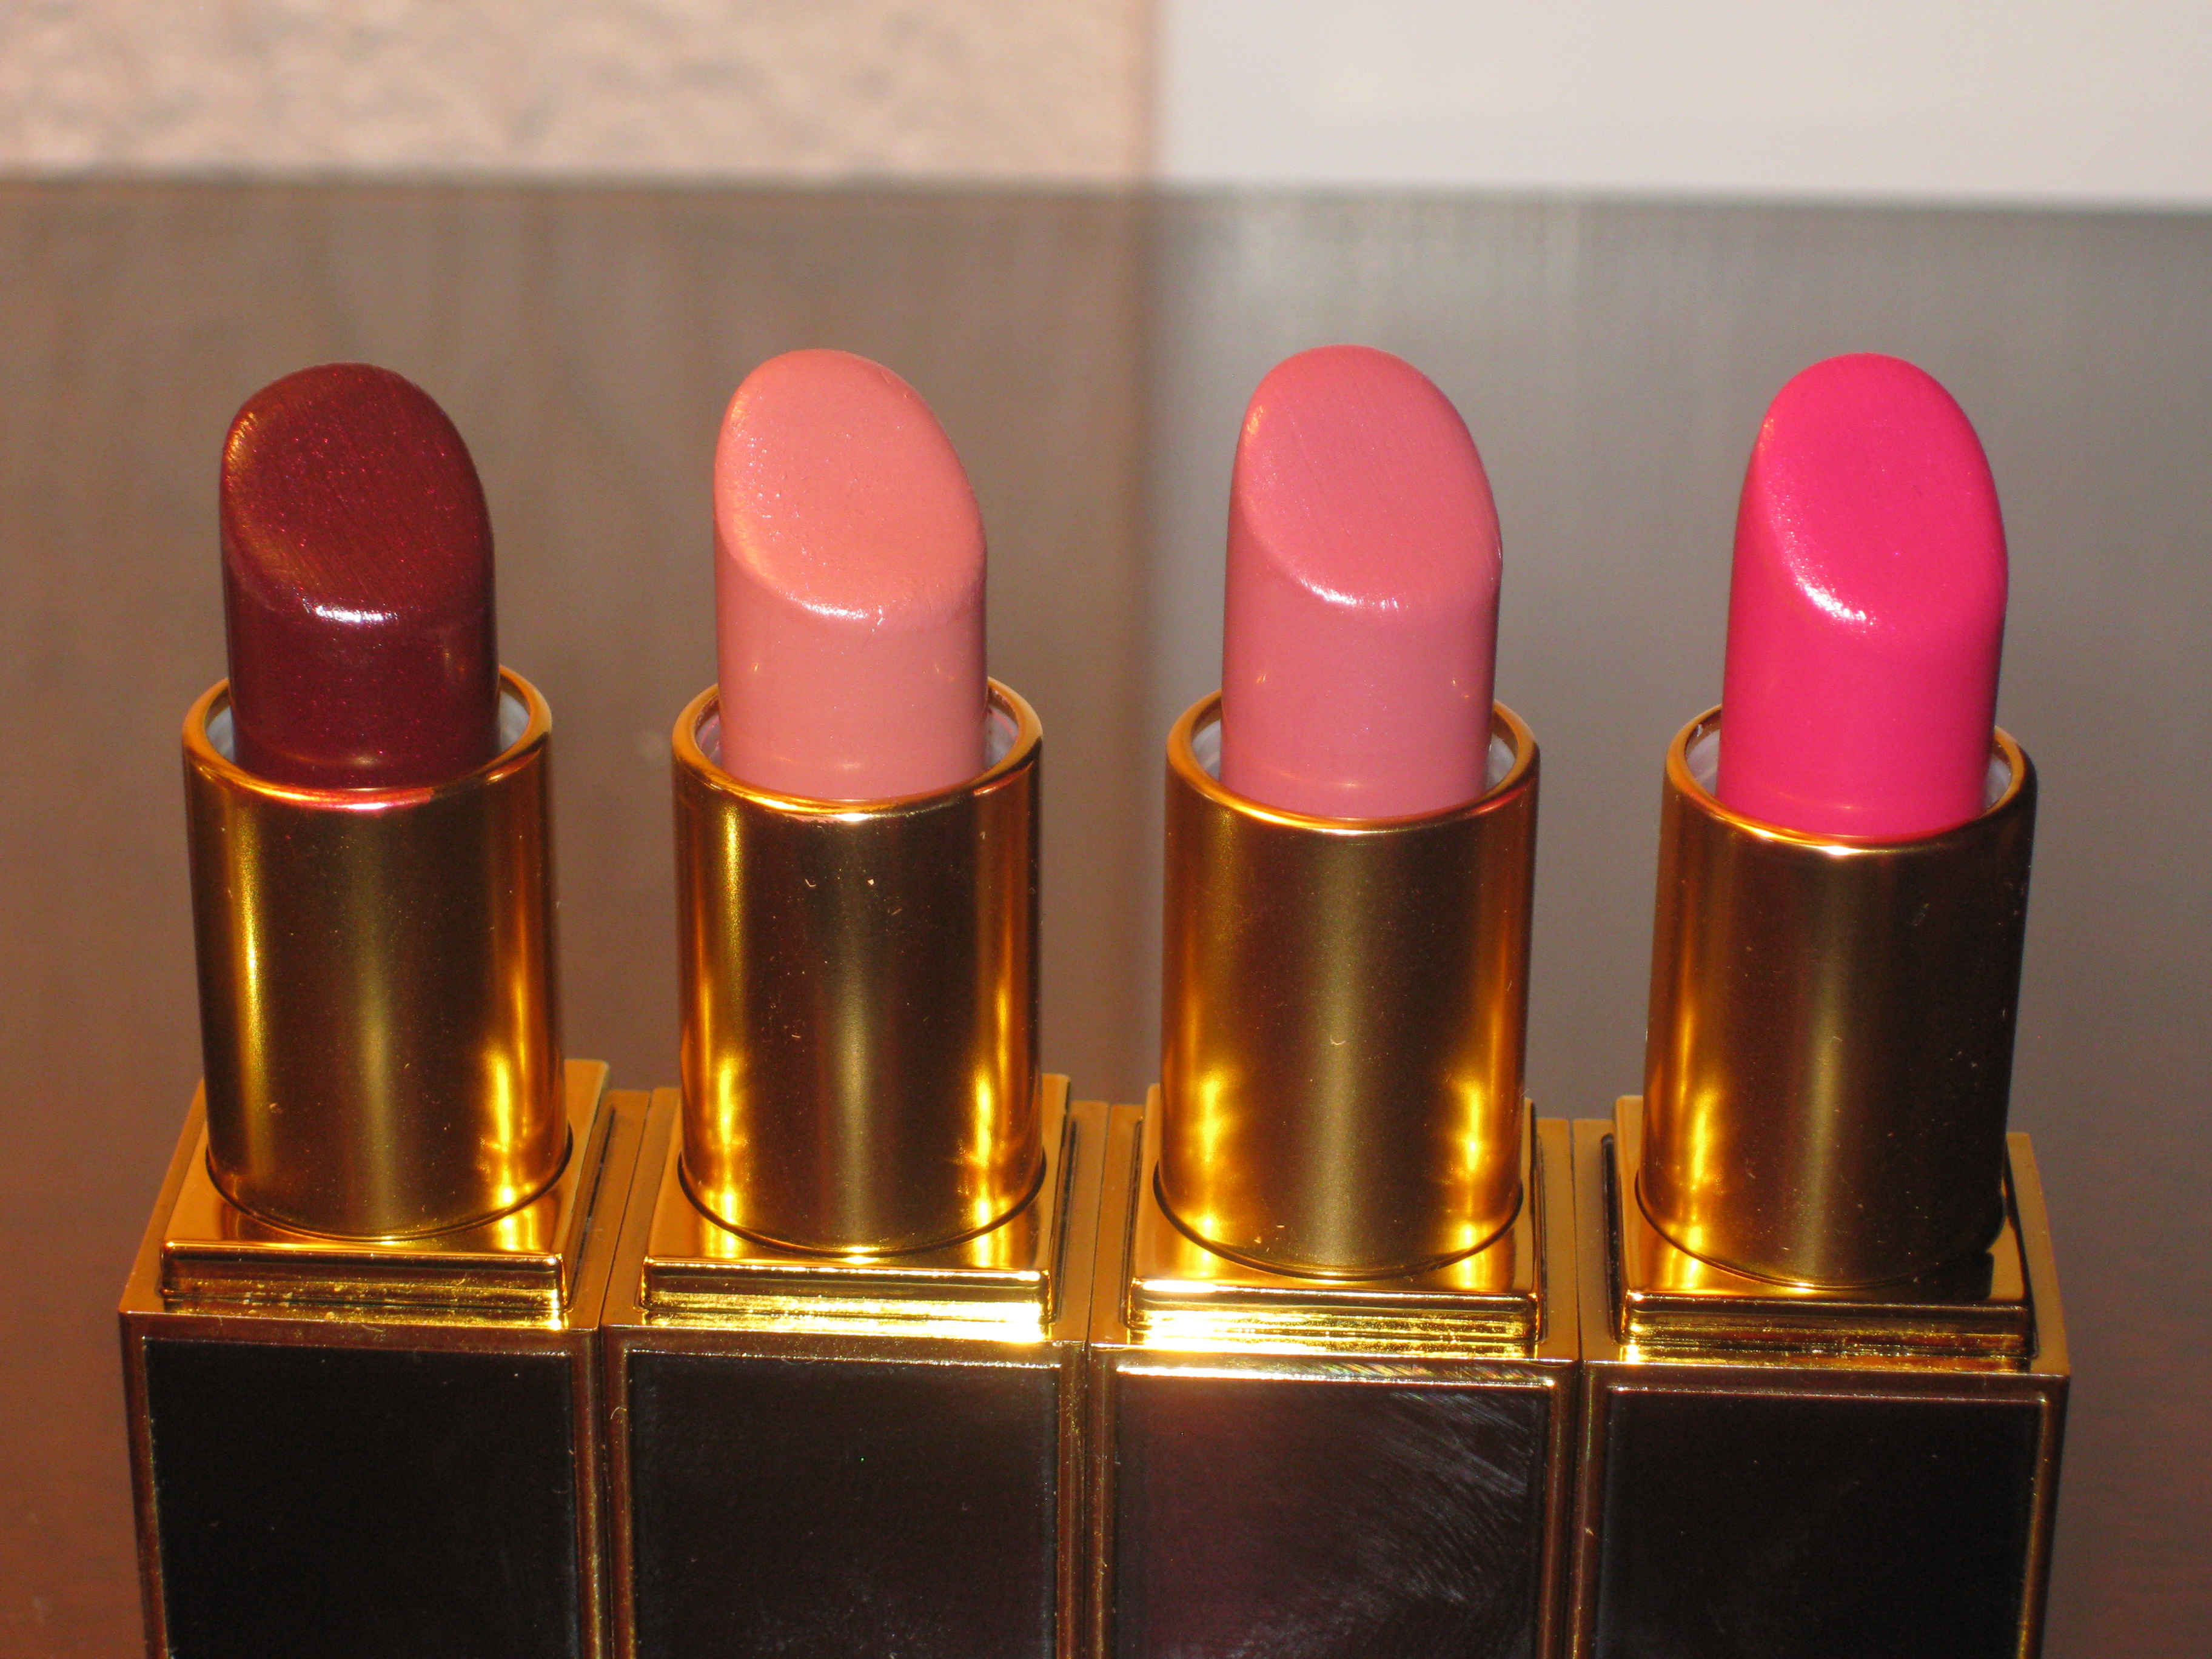 tom ford lipsticks the bad the good and the ugly if makeup could. Cars Review. Best American Auto & Cars Review